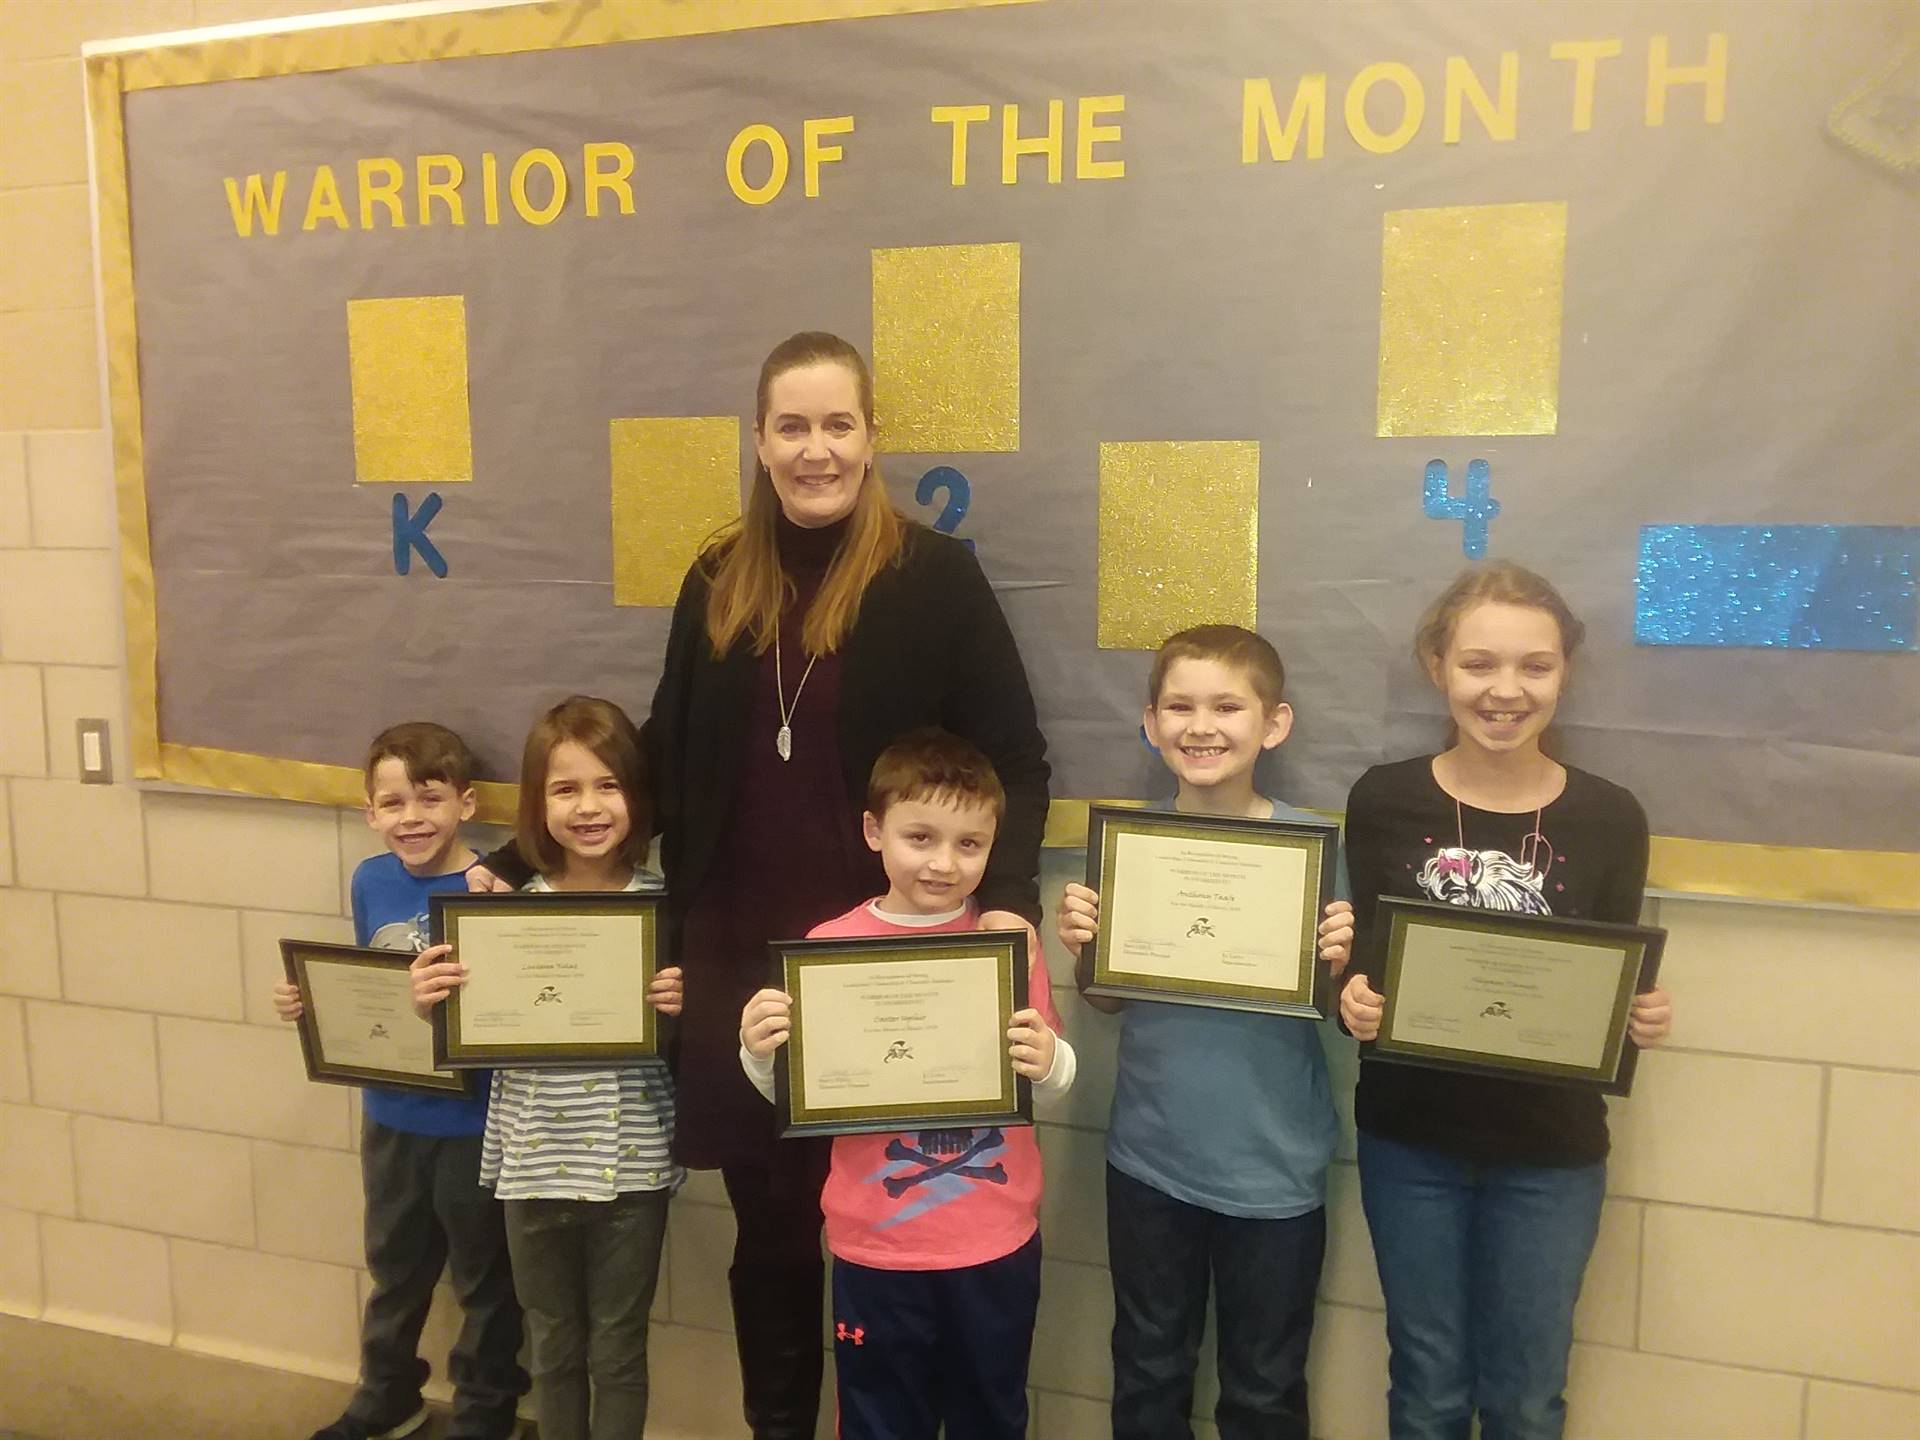 March warriors of the month group photo